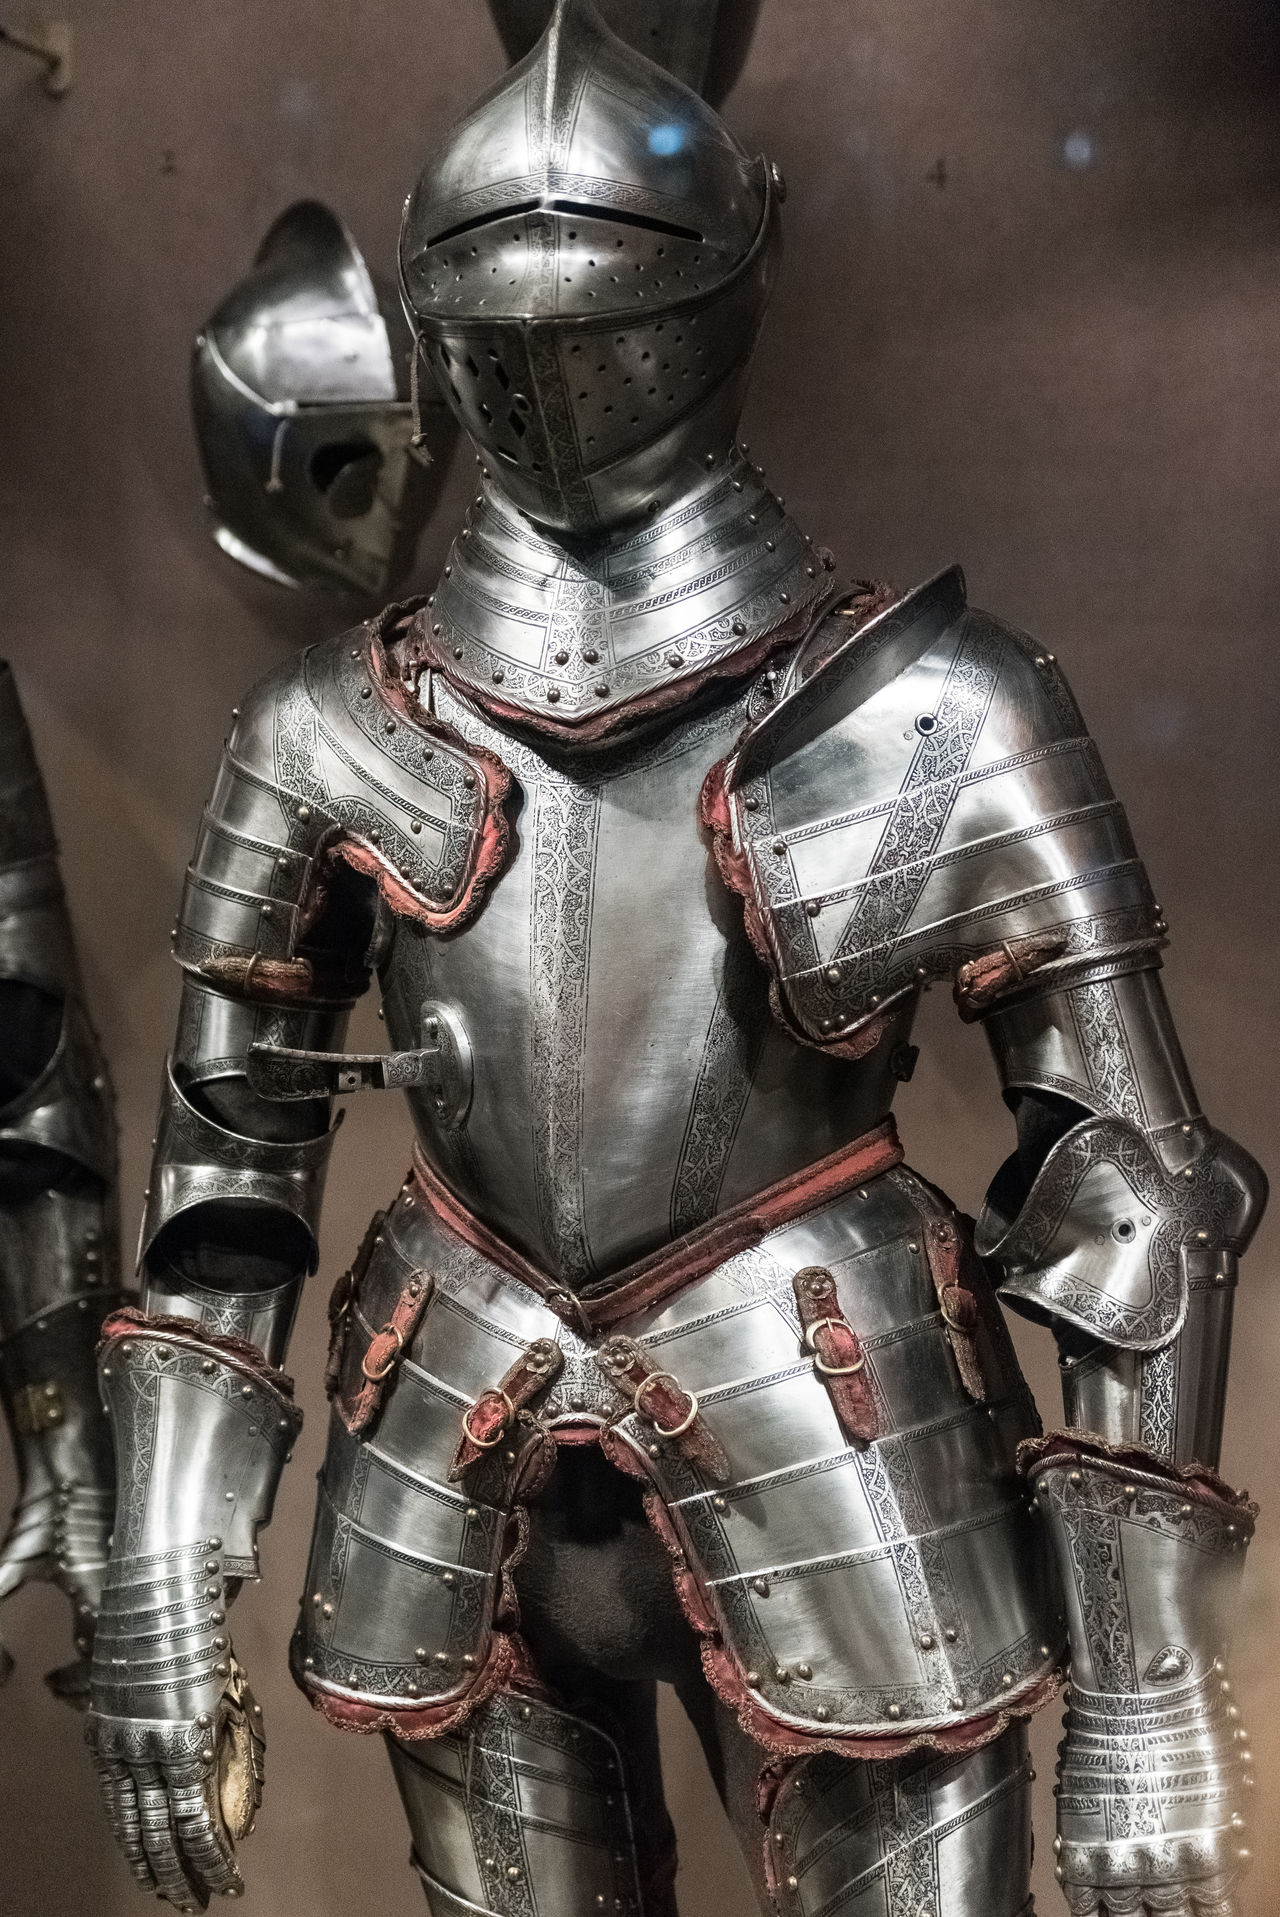 Army Helmet Close-up Day Futuristic Headwear Helmet History Indoors  Medieval Metal Military Museum No People Protection Protective Workwear Shield Shiny Silver Colored Space Suit Suit Of Armor Technology Weapon Work Helmet